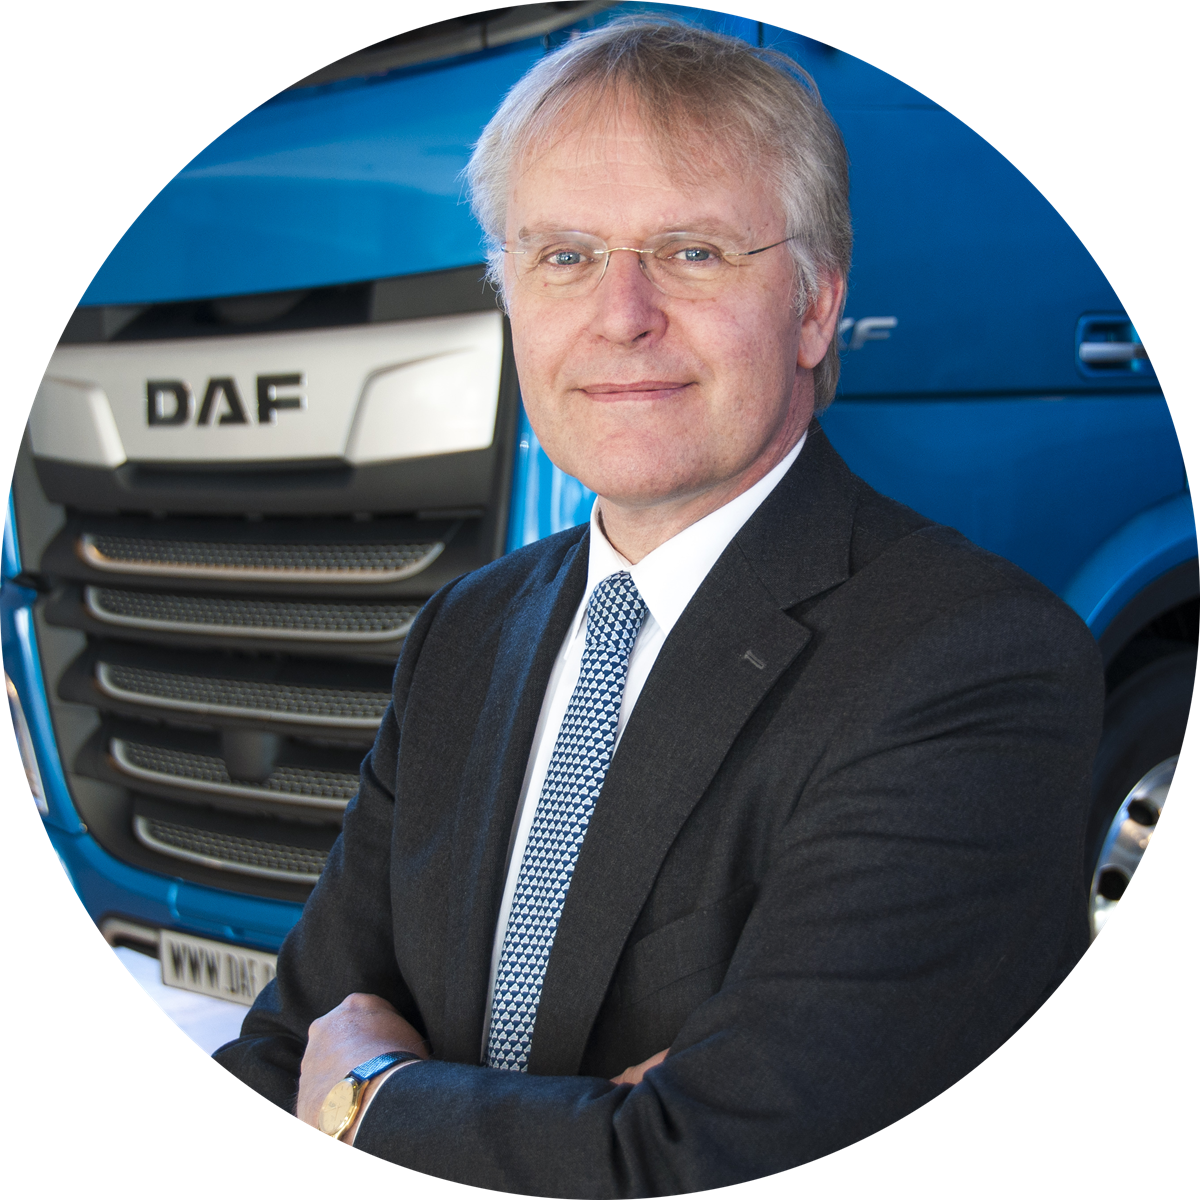 Richard Zink DAF